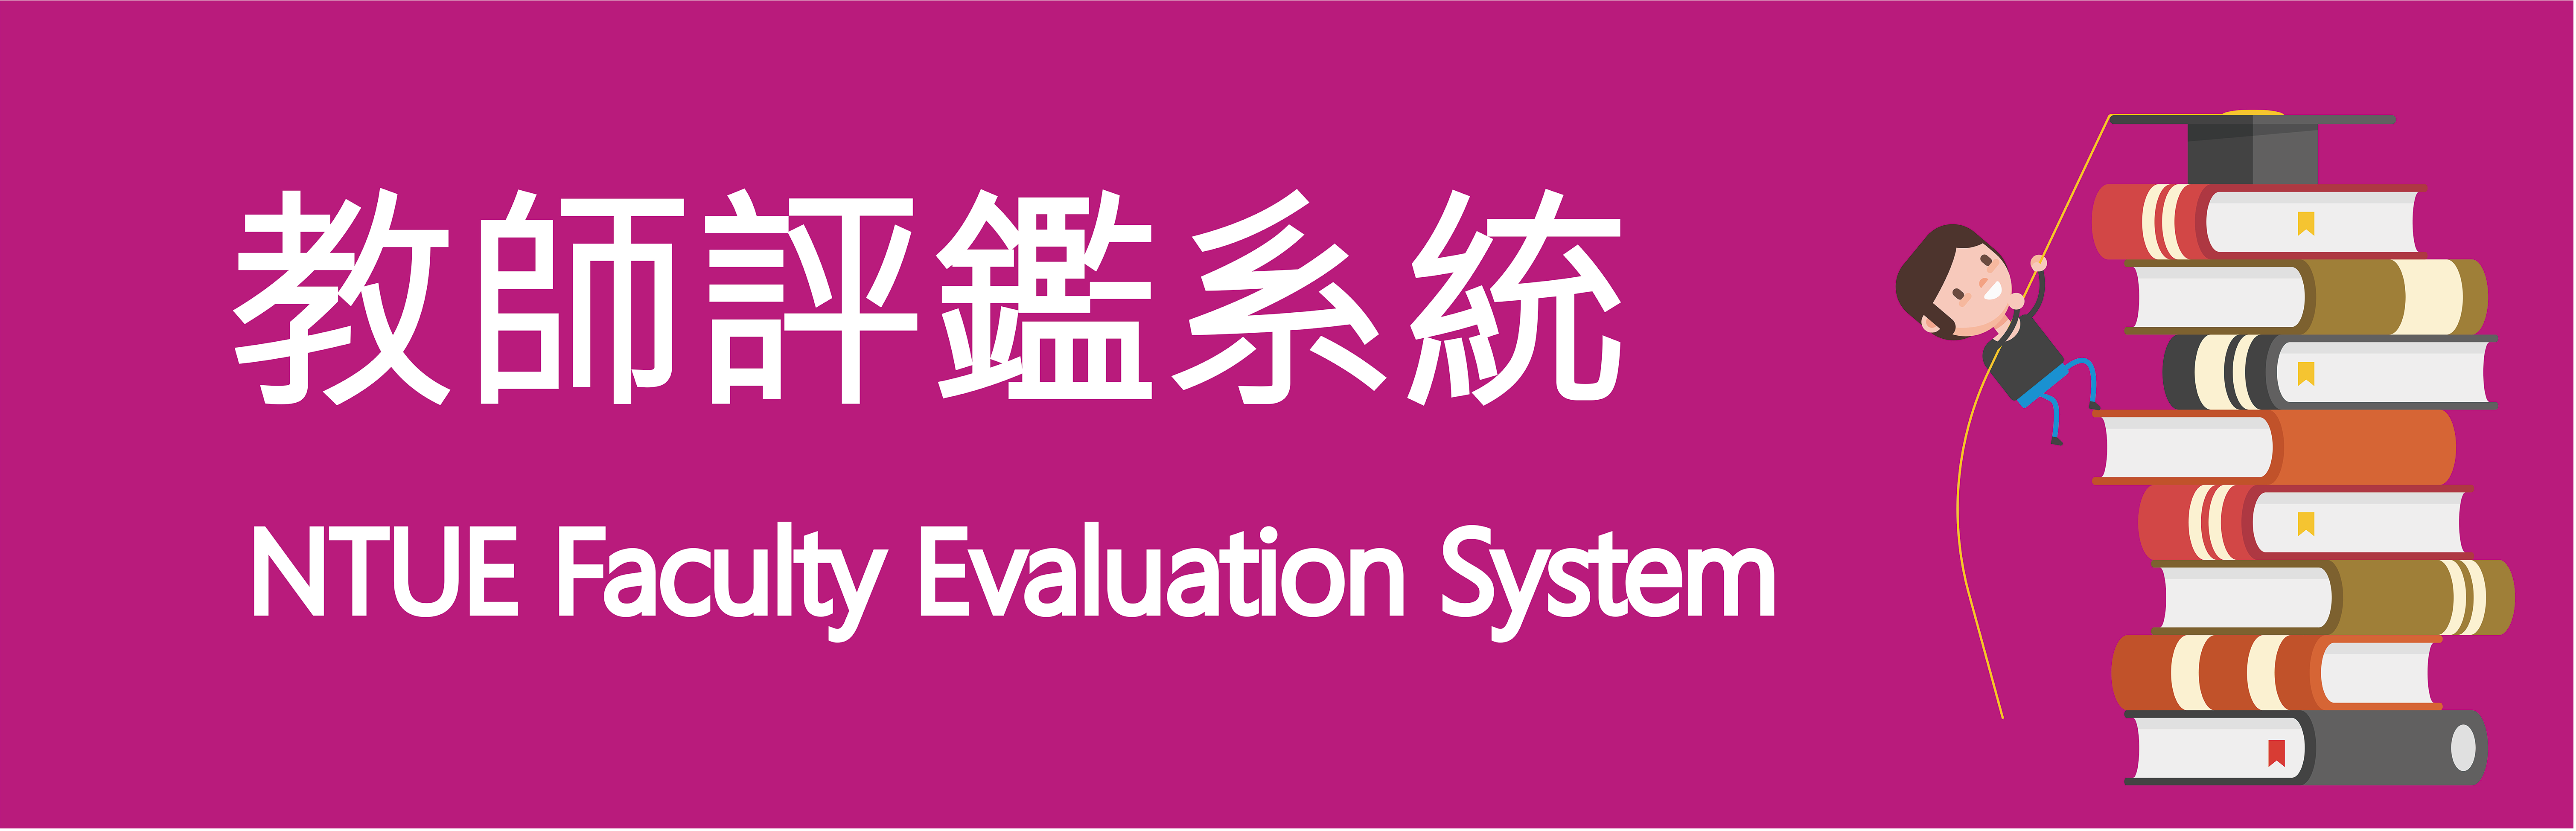 NTUE Faculty Evaluation System